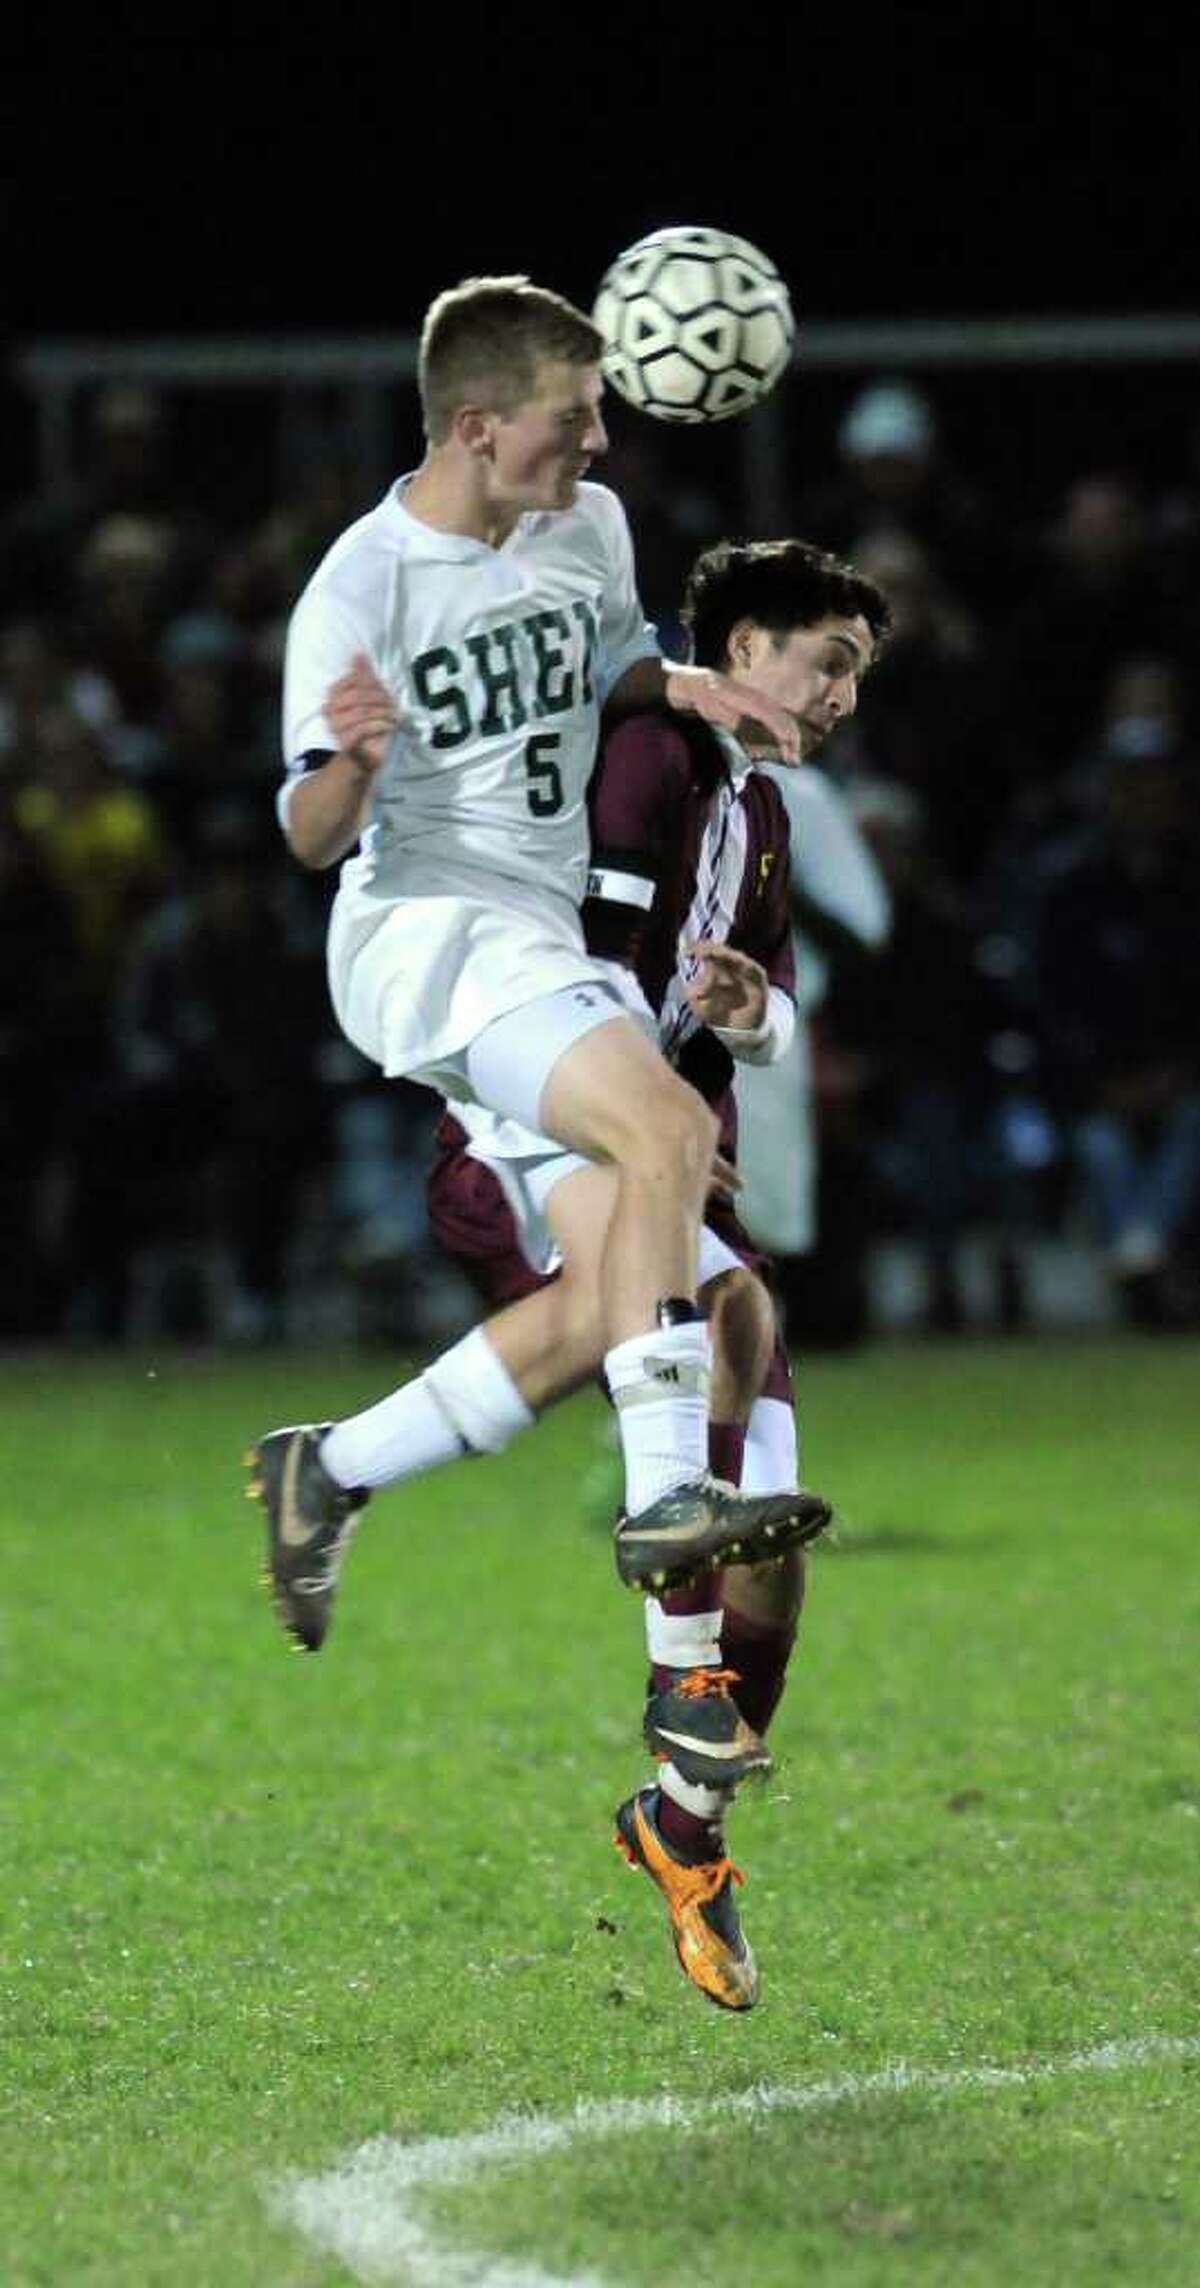 Shenendehowa's Philip Barrett, left, battles Colonie's Massimo Smiroldo, right, during Shen's 2-1 victory in the Section II Class AA championship game on Monday night Nov. 7, 2011 in Colonie, NY. (Philip Kamrass / Times Union )